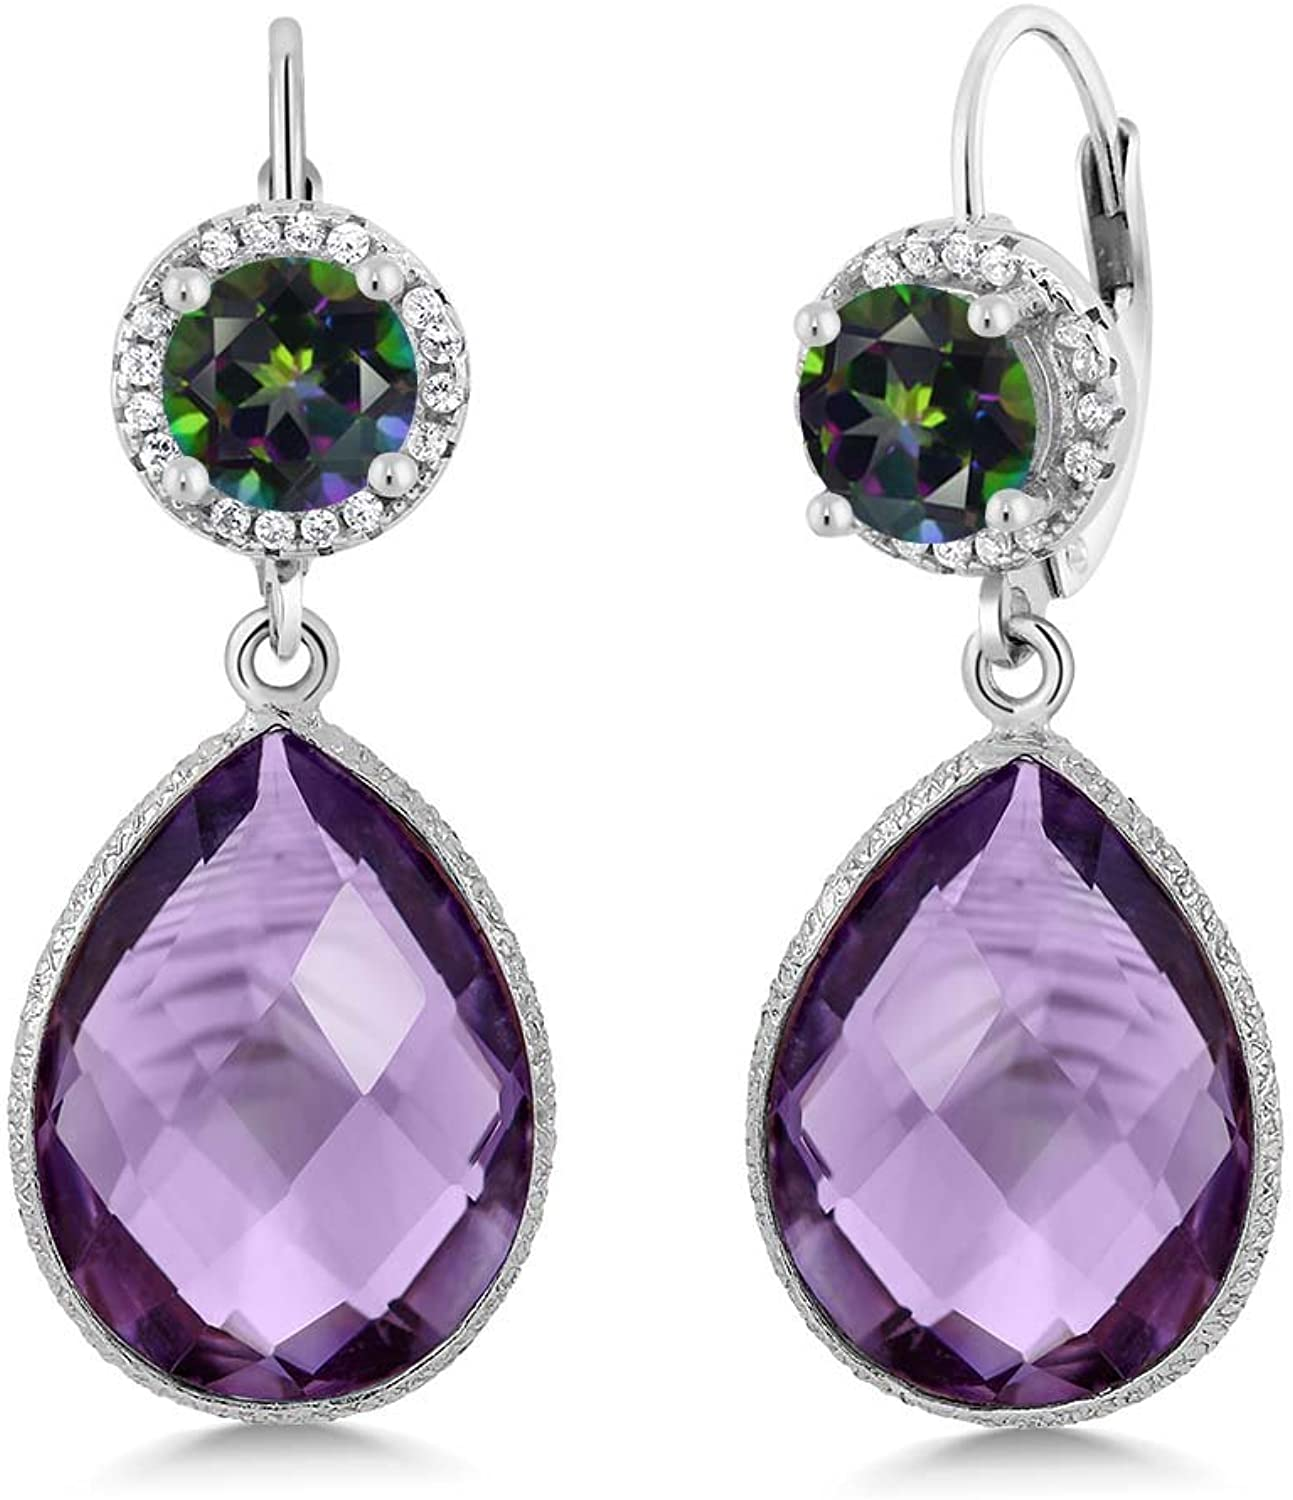 2.00 Ct Round Green Mystic Topaz Amethyst 925 Sterling Silver Earrings